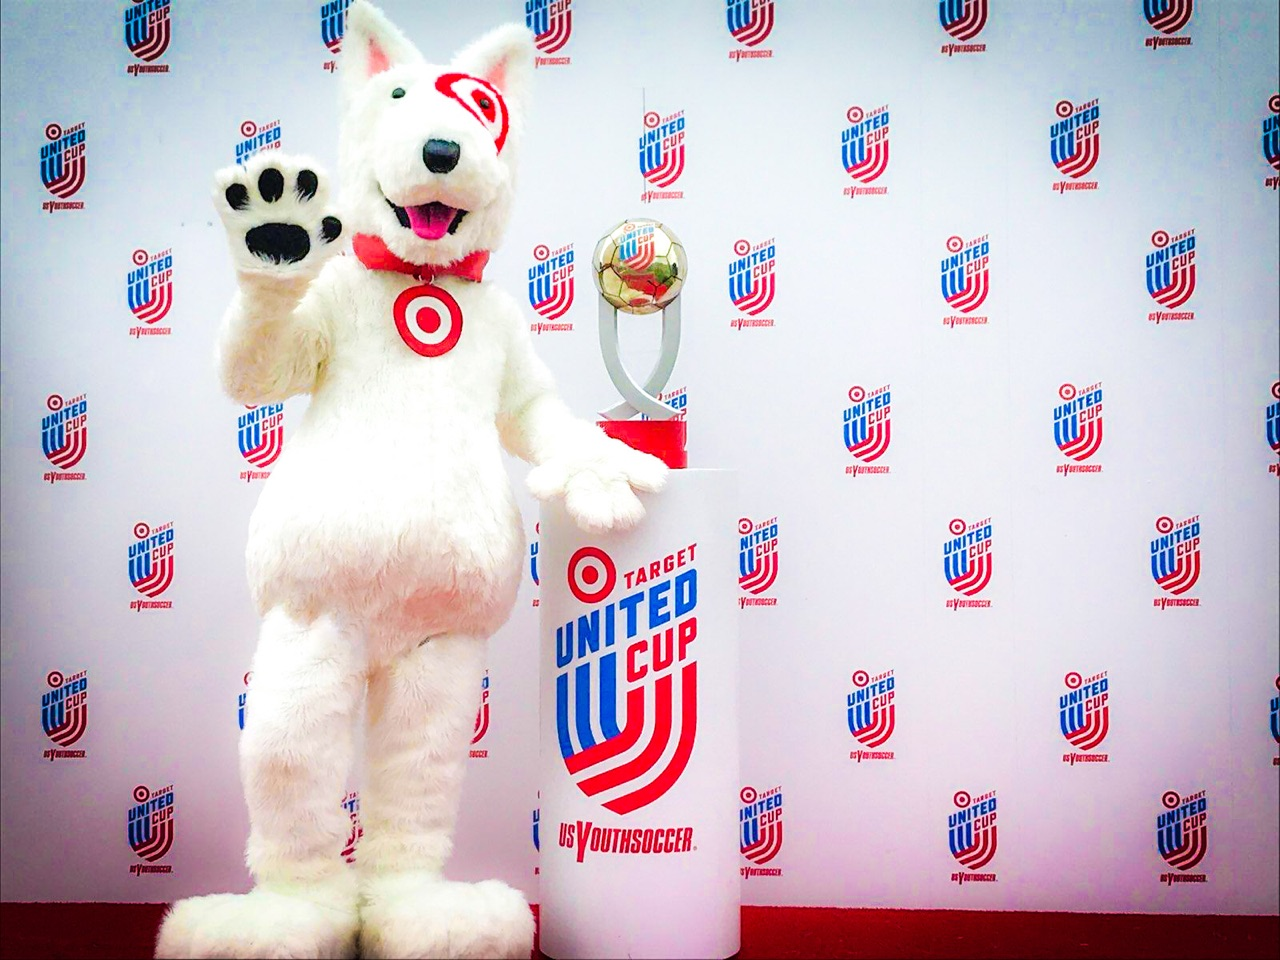 Target United Cup Brand Mascot